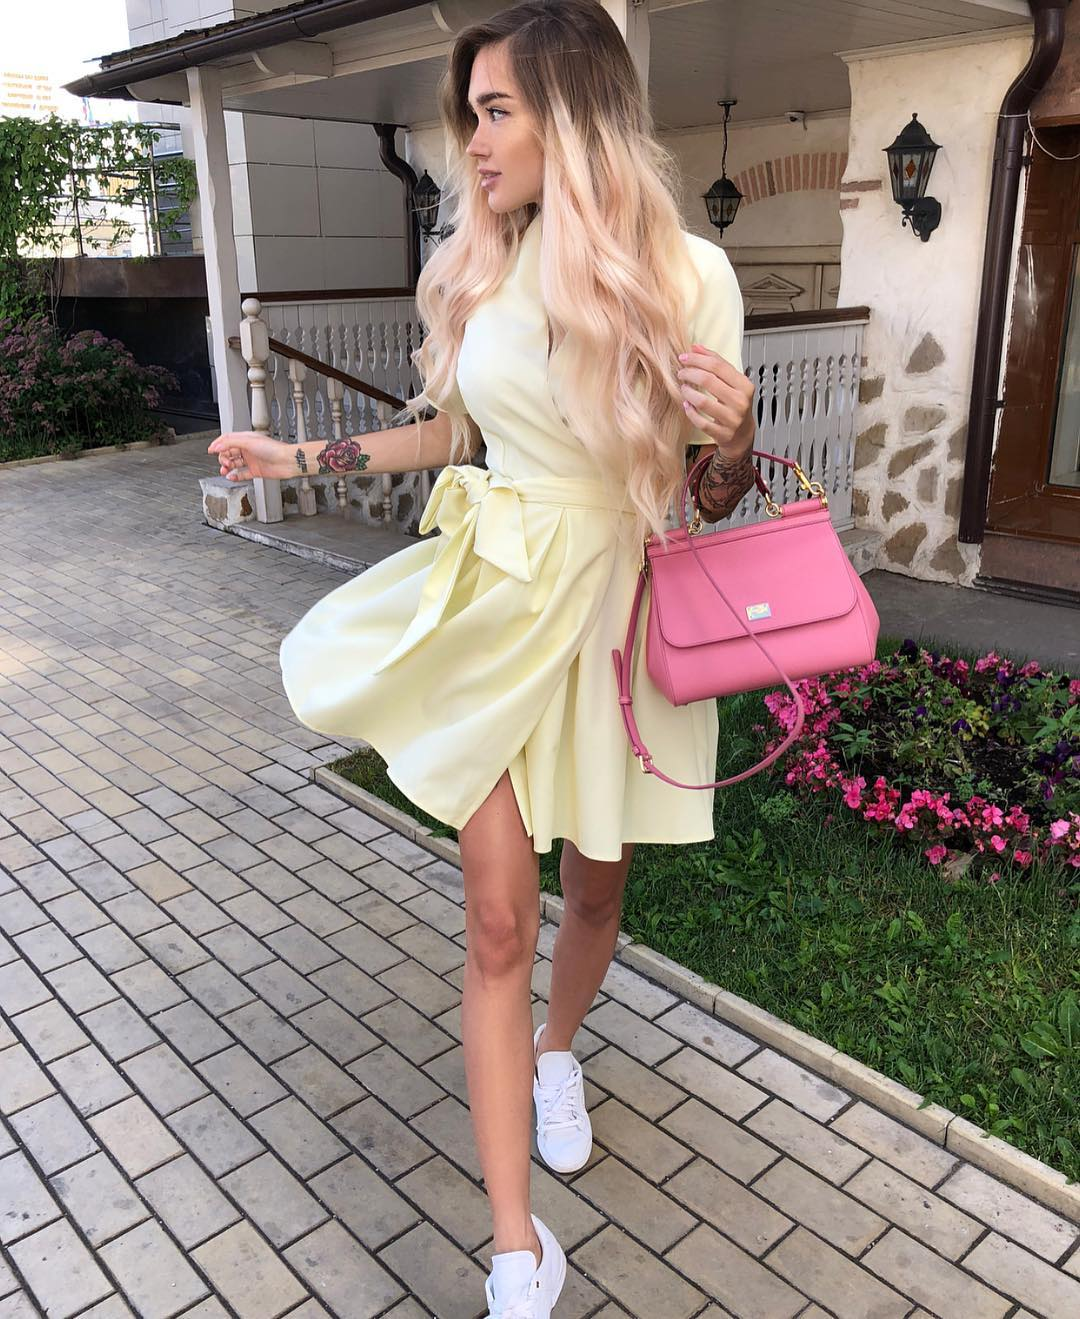 Pastel Yellow Belted Shirtdress With White Sneakers And Pink Handbag 2020